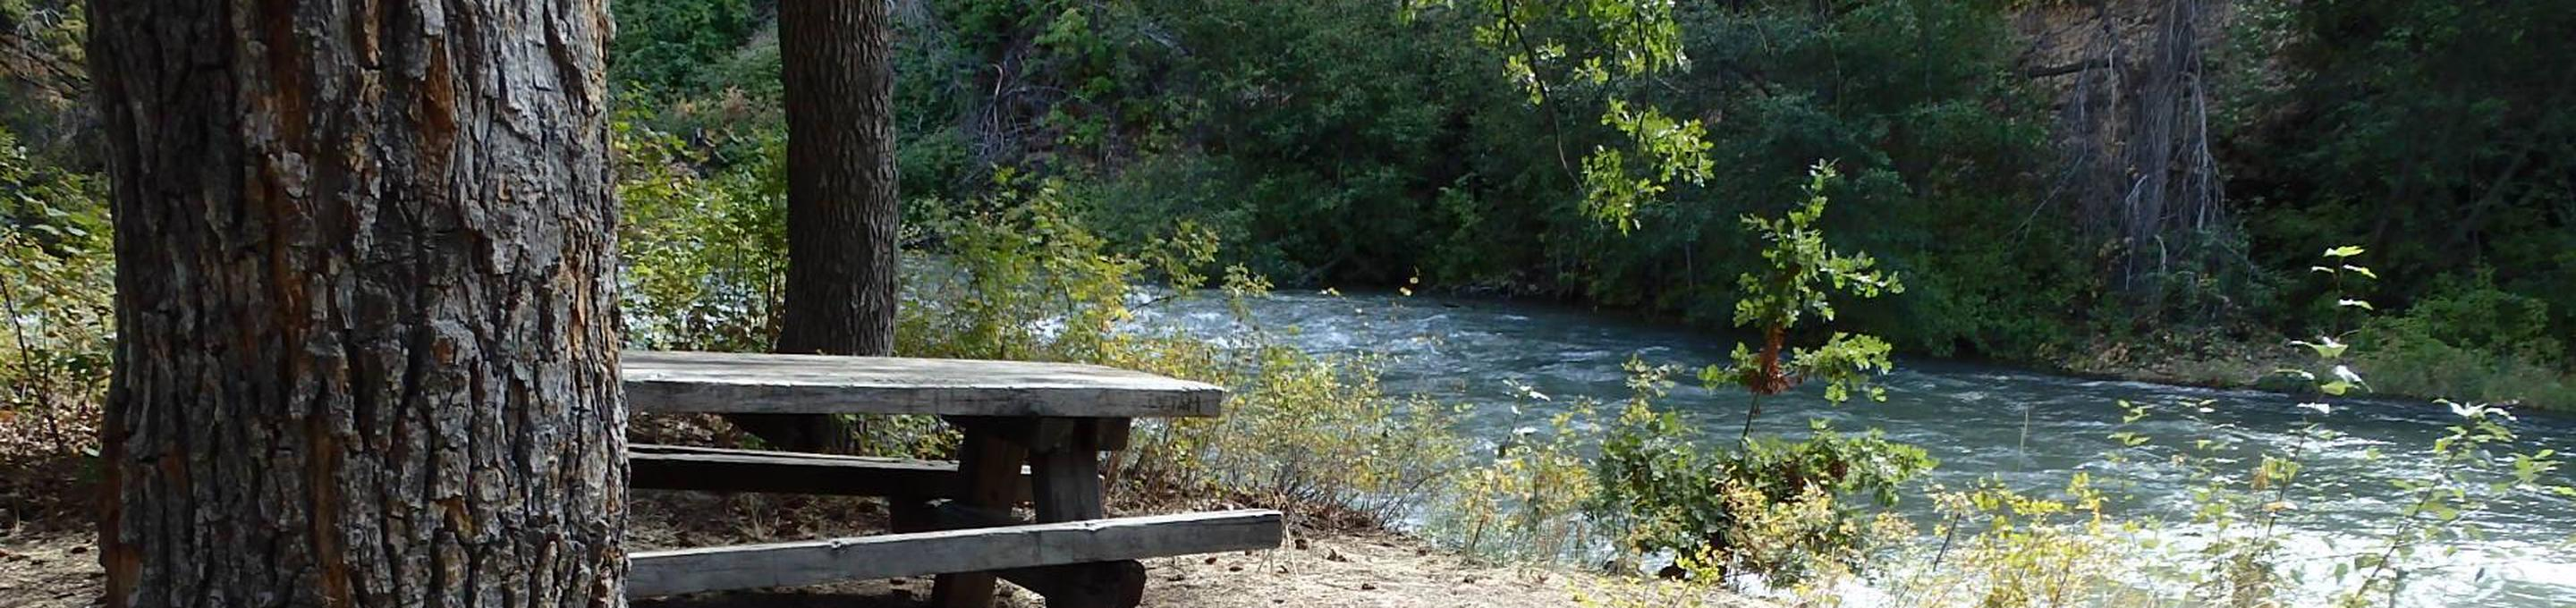 Windy Point CampgroundSite offers views of the River